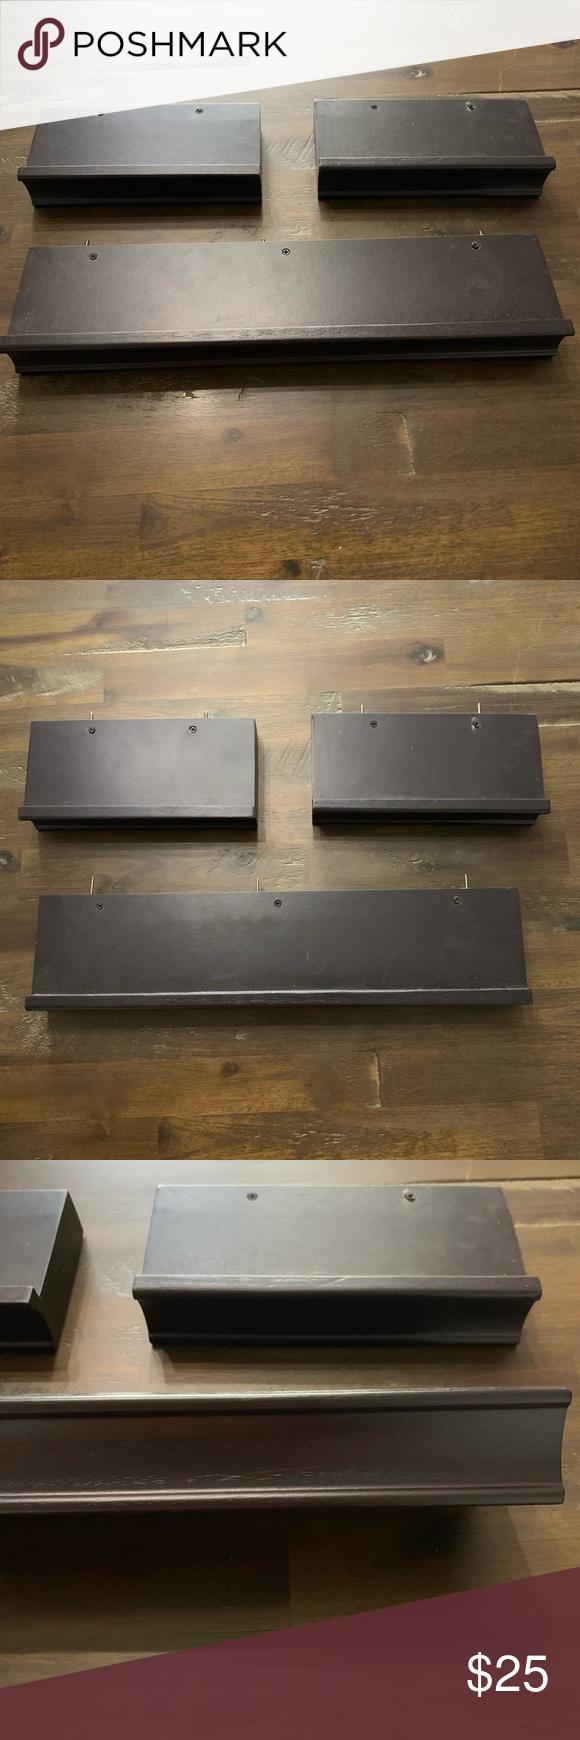 Floating shelves in espresso- set of 3 Set of 3 espresso floating shelves. These are a dark chocolate or espresso brown color. Almost black. Hardware included. Minor scratches on the shelf part where you set things on top. Beautiful set. Measurements in pics. Similar sets sell at Home Depot and Kohl's for $45-$60 Wall Art Display Shelves #espressoathome